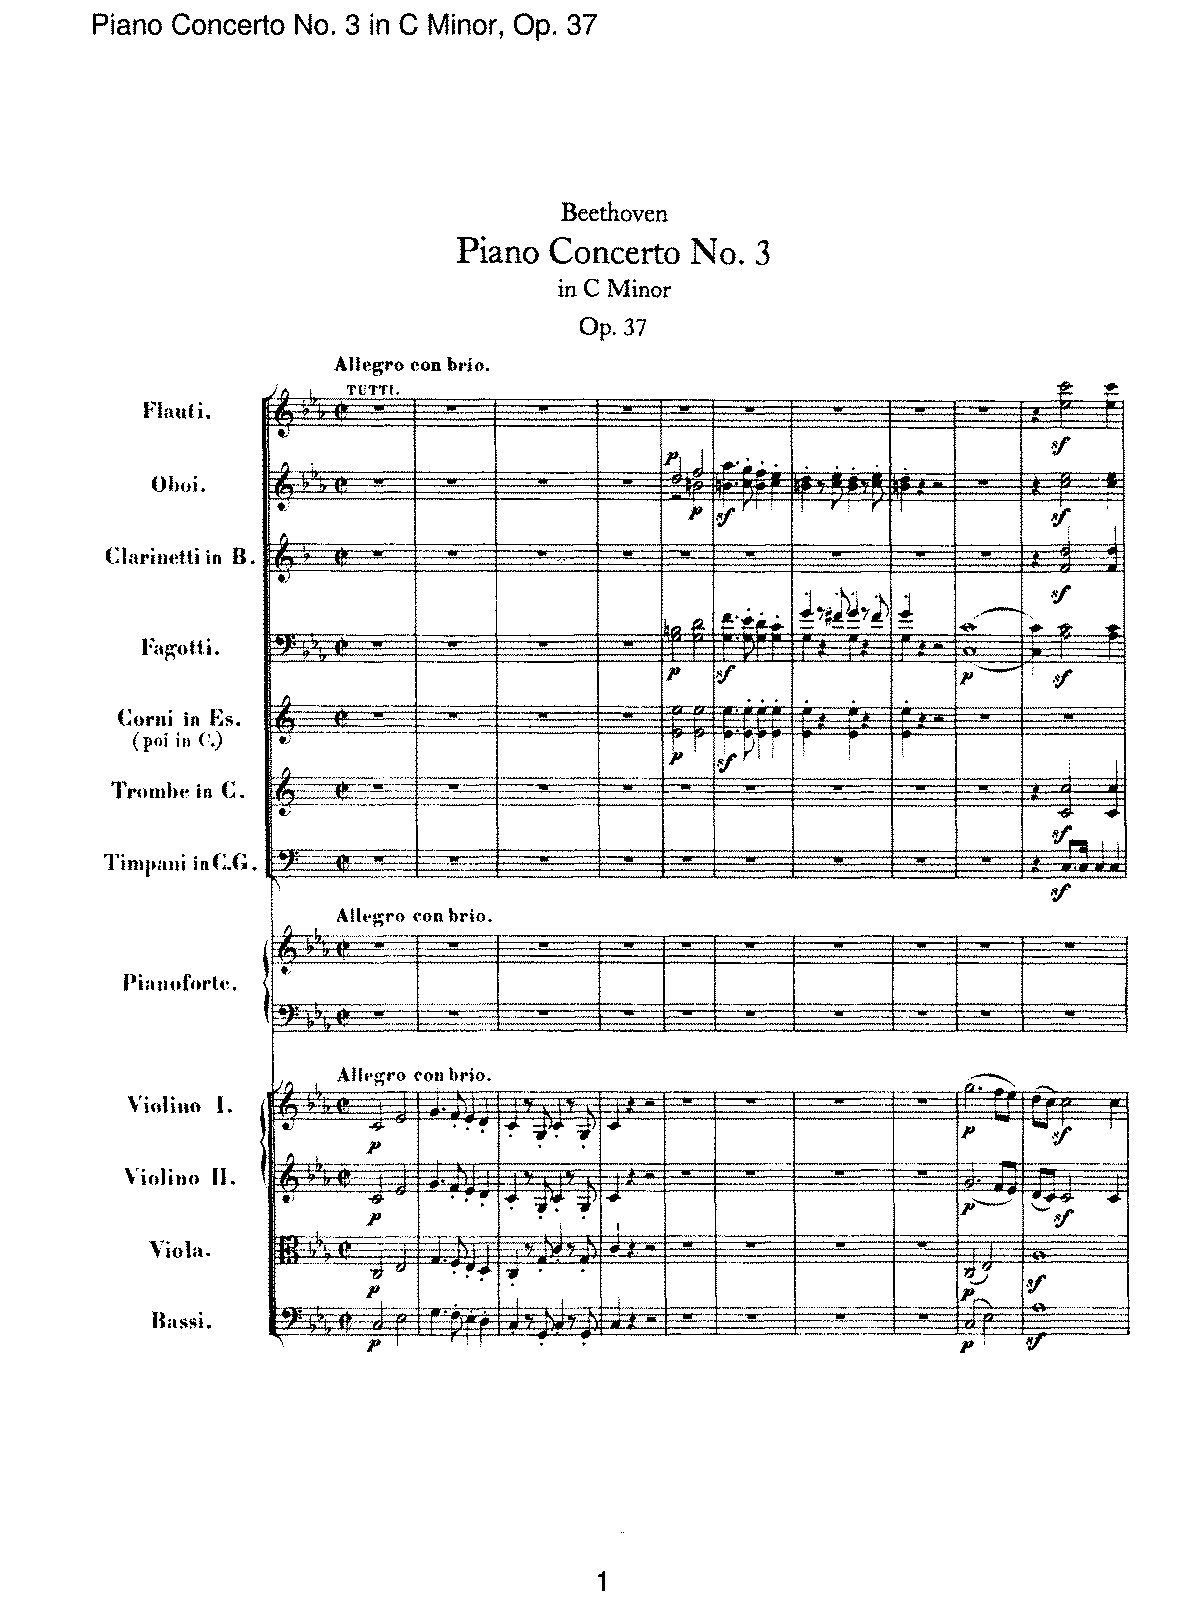 Piano Concerto No. 3 in C Minor, Op. 37-I. Allegro con brio.pdf